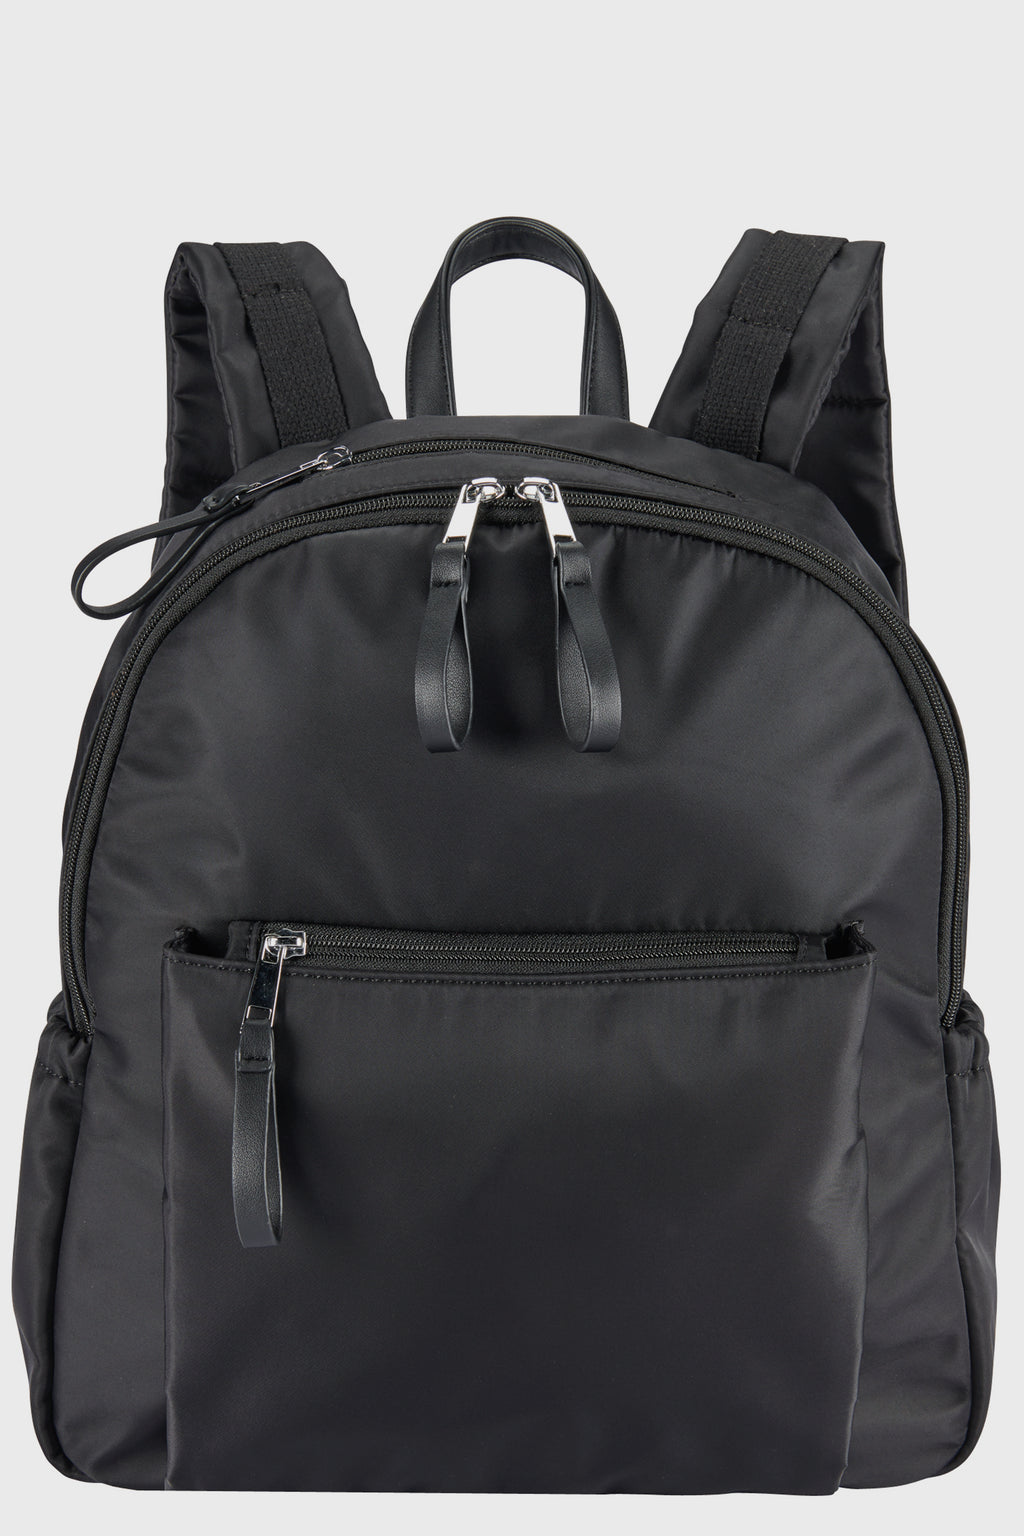 Nylon Backpack w/Padded Laptop Pocket (BSB3735)-BACKPACK-BaySky